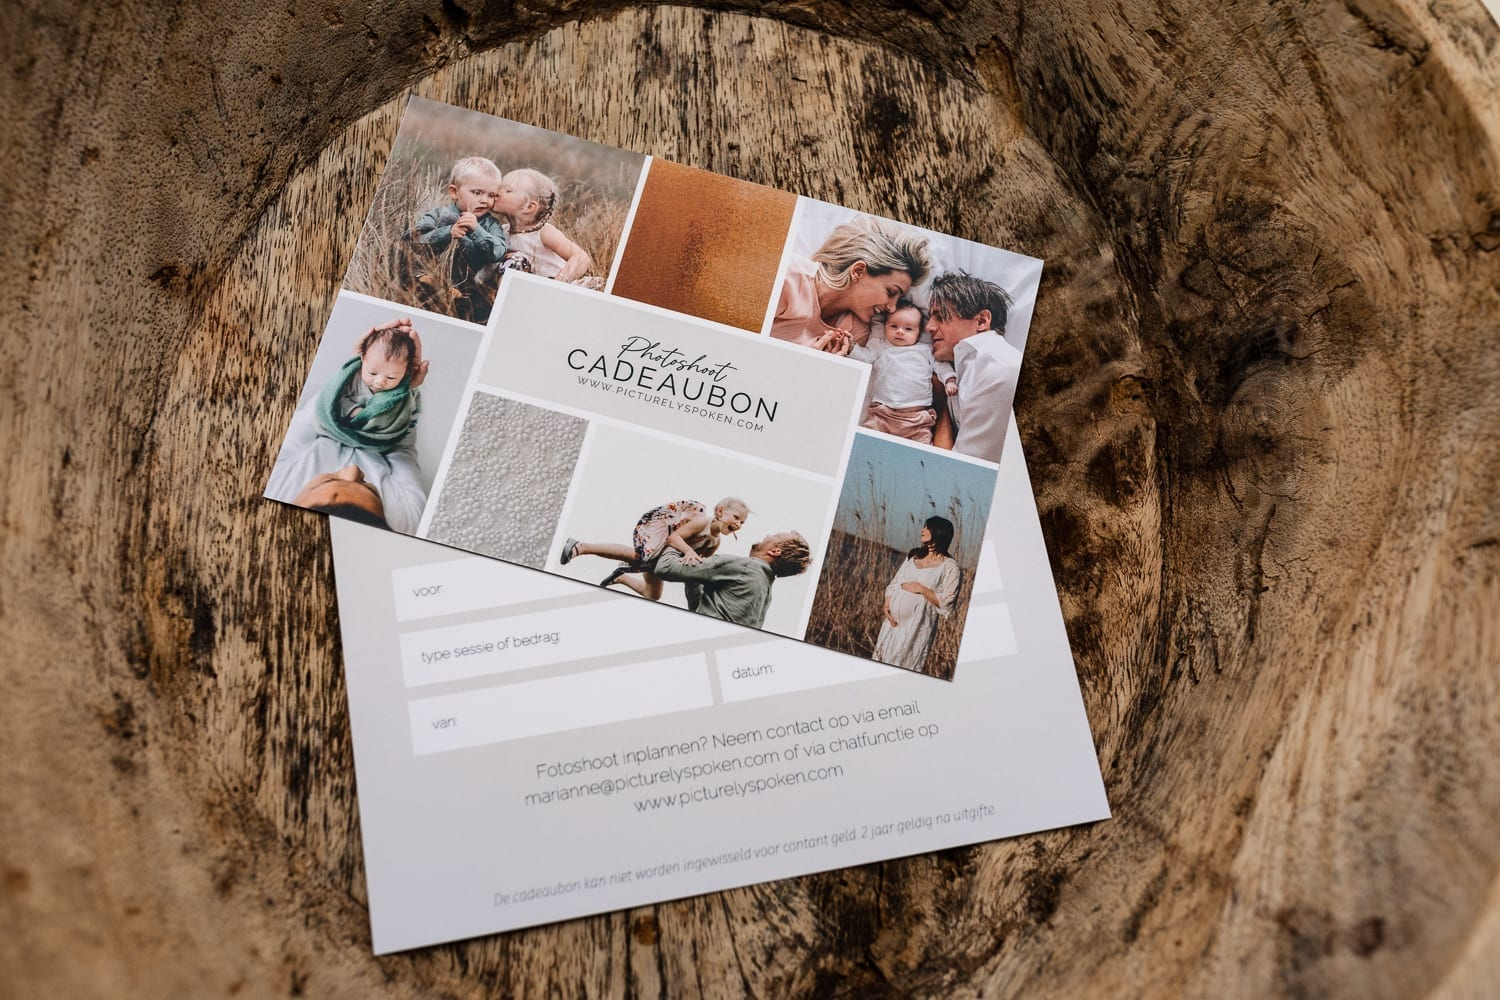 Photoshoot Gift cards - fotoshoot cadeaubon